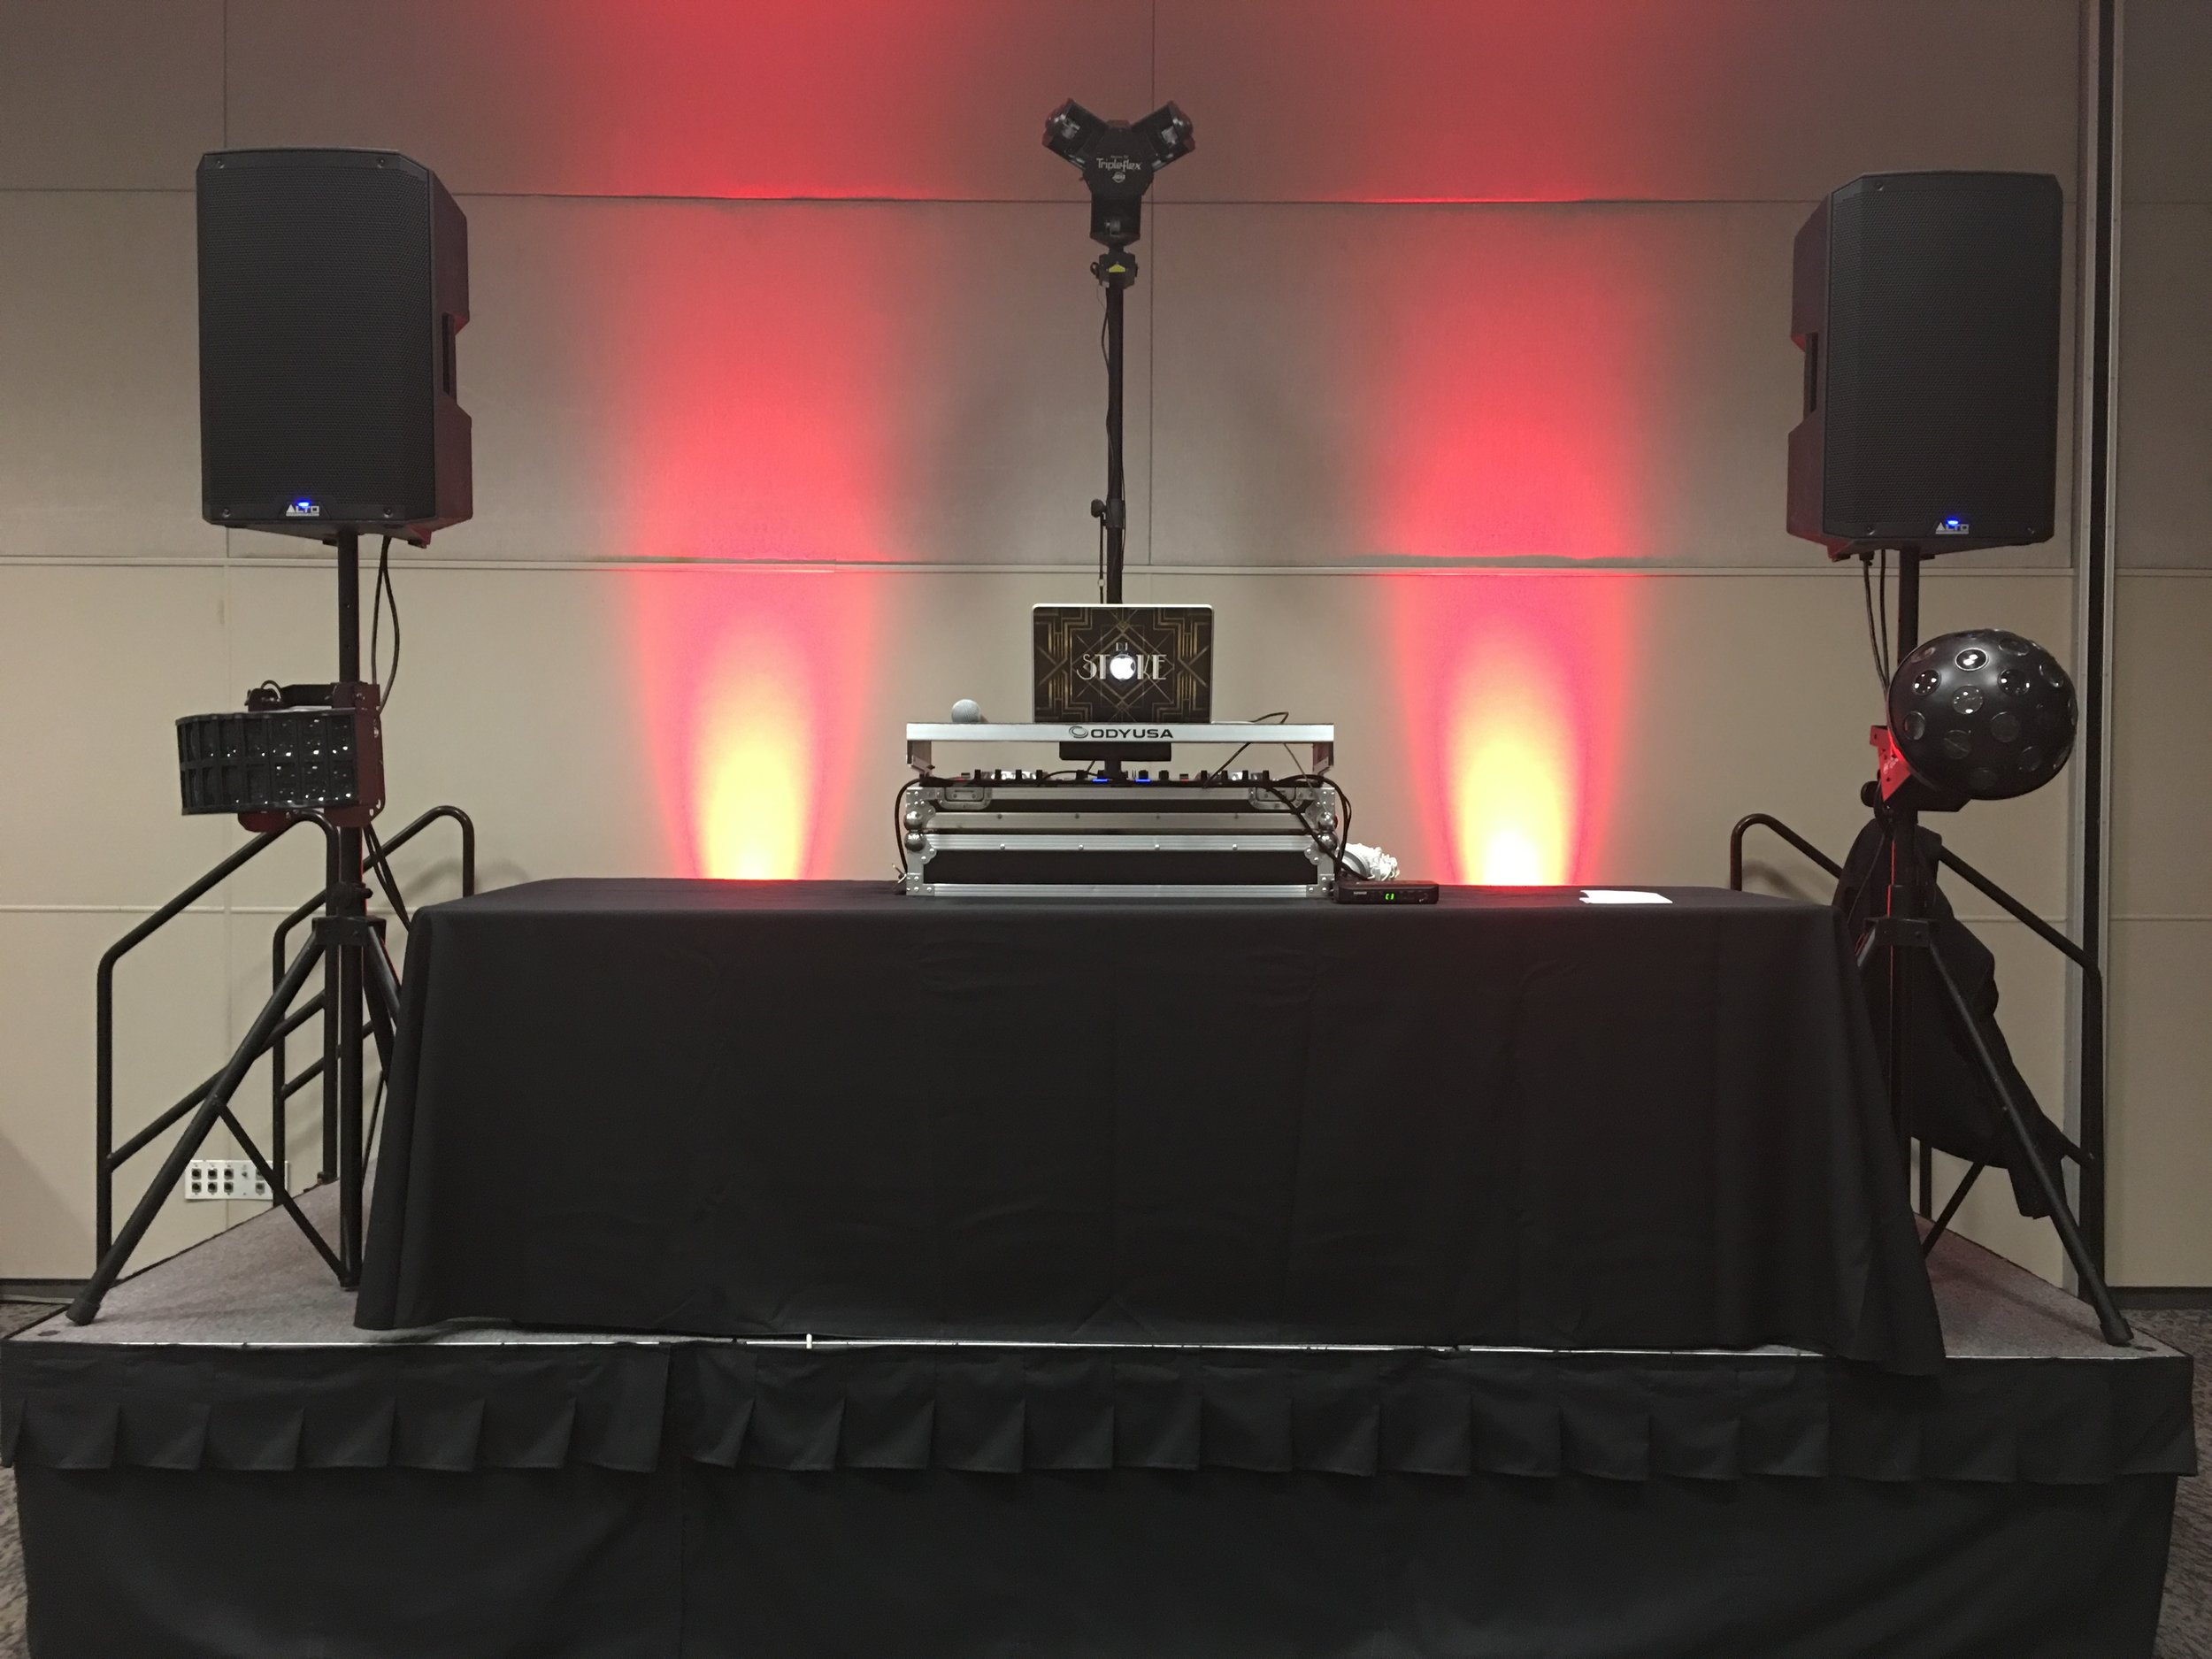 My Setup for Holiday Party - Ontario Convention Center